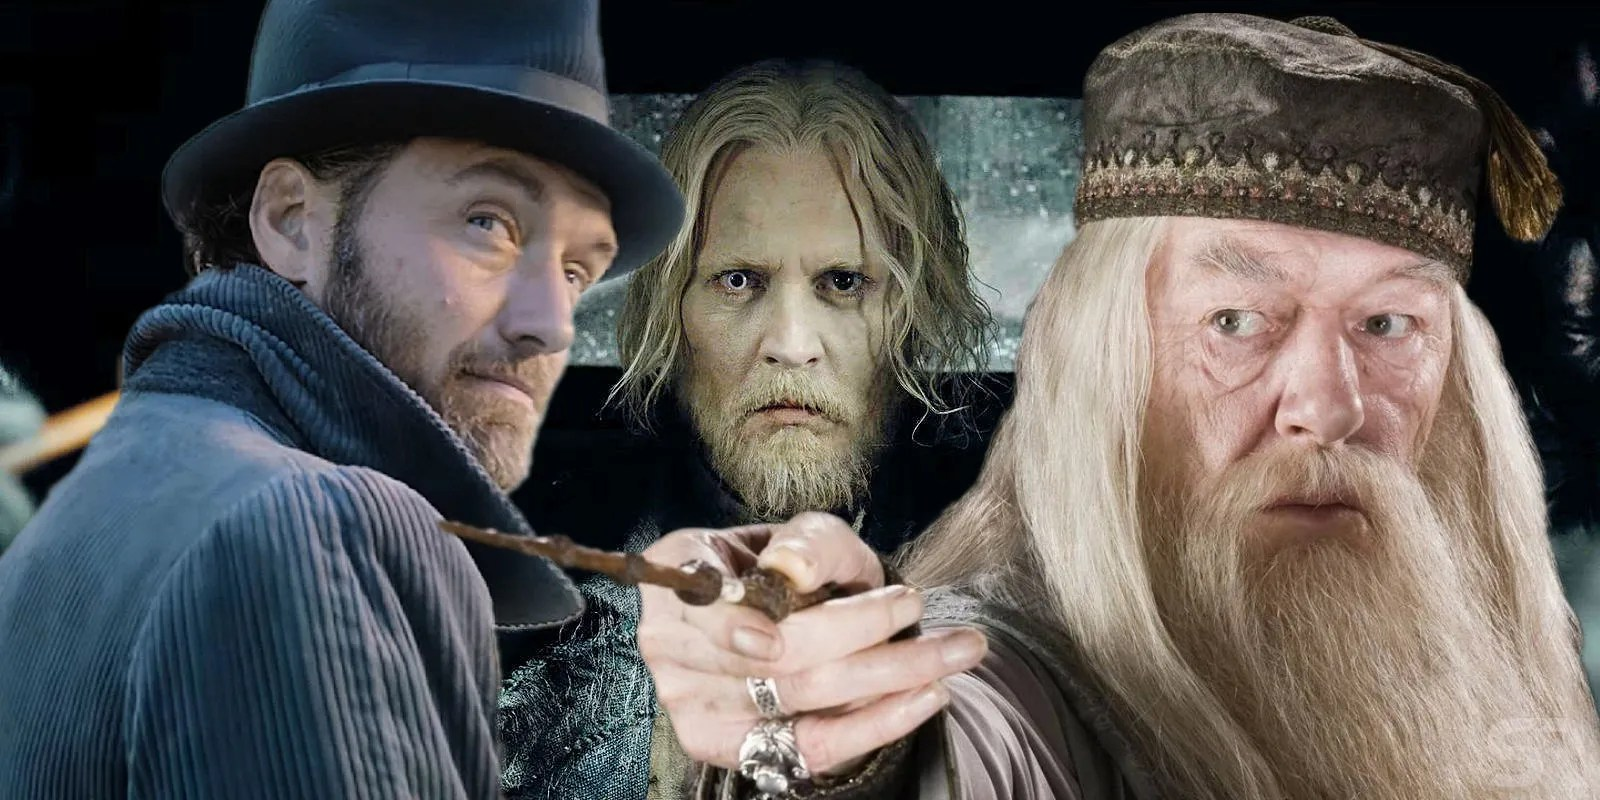 Theory Dumbledore Was Lying About Grindelwald In The